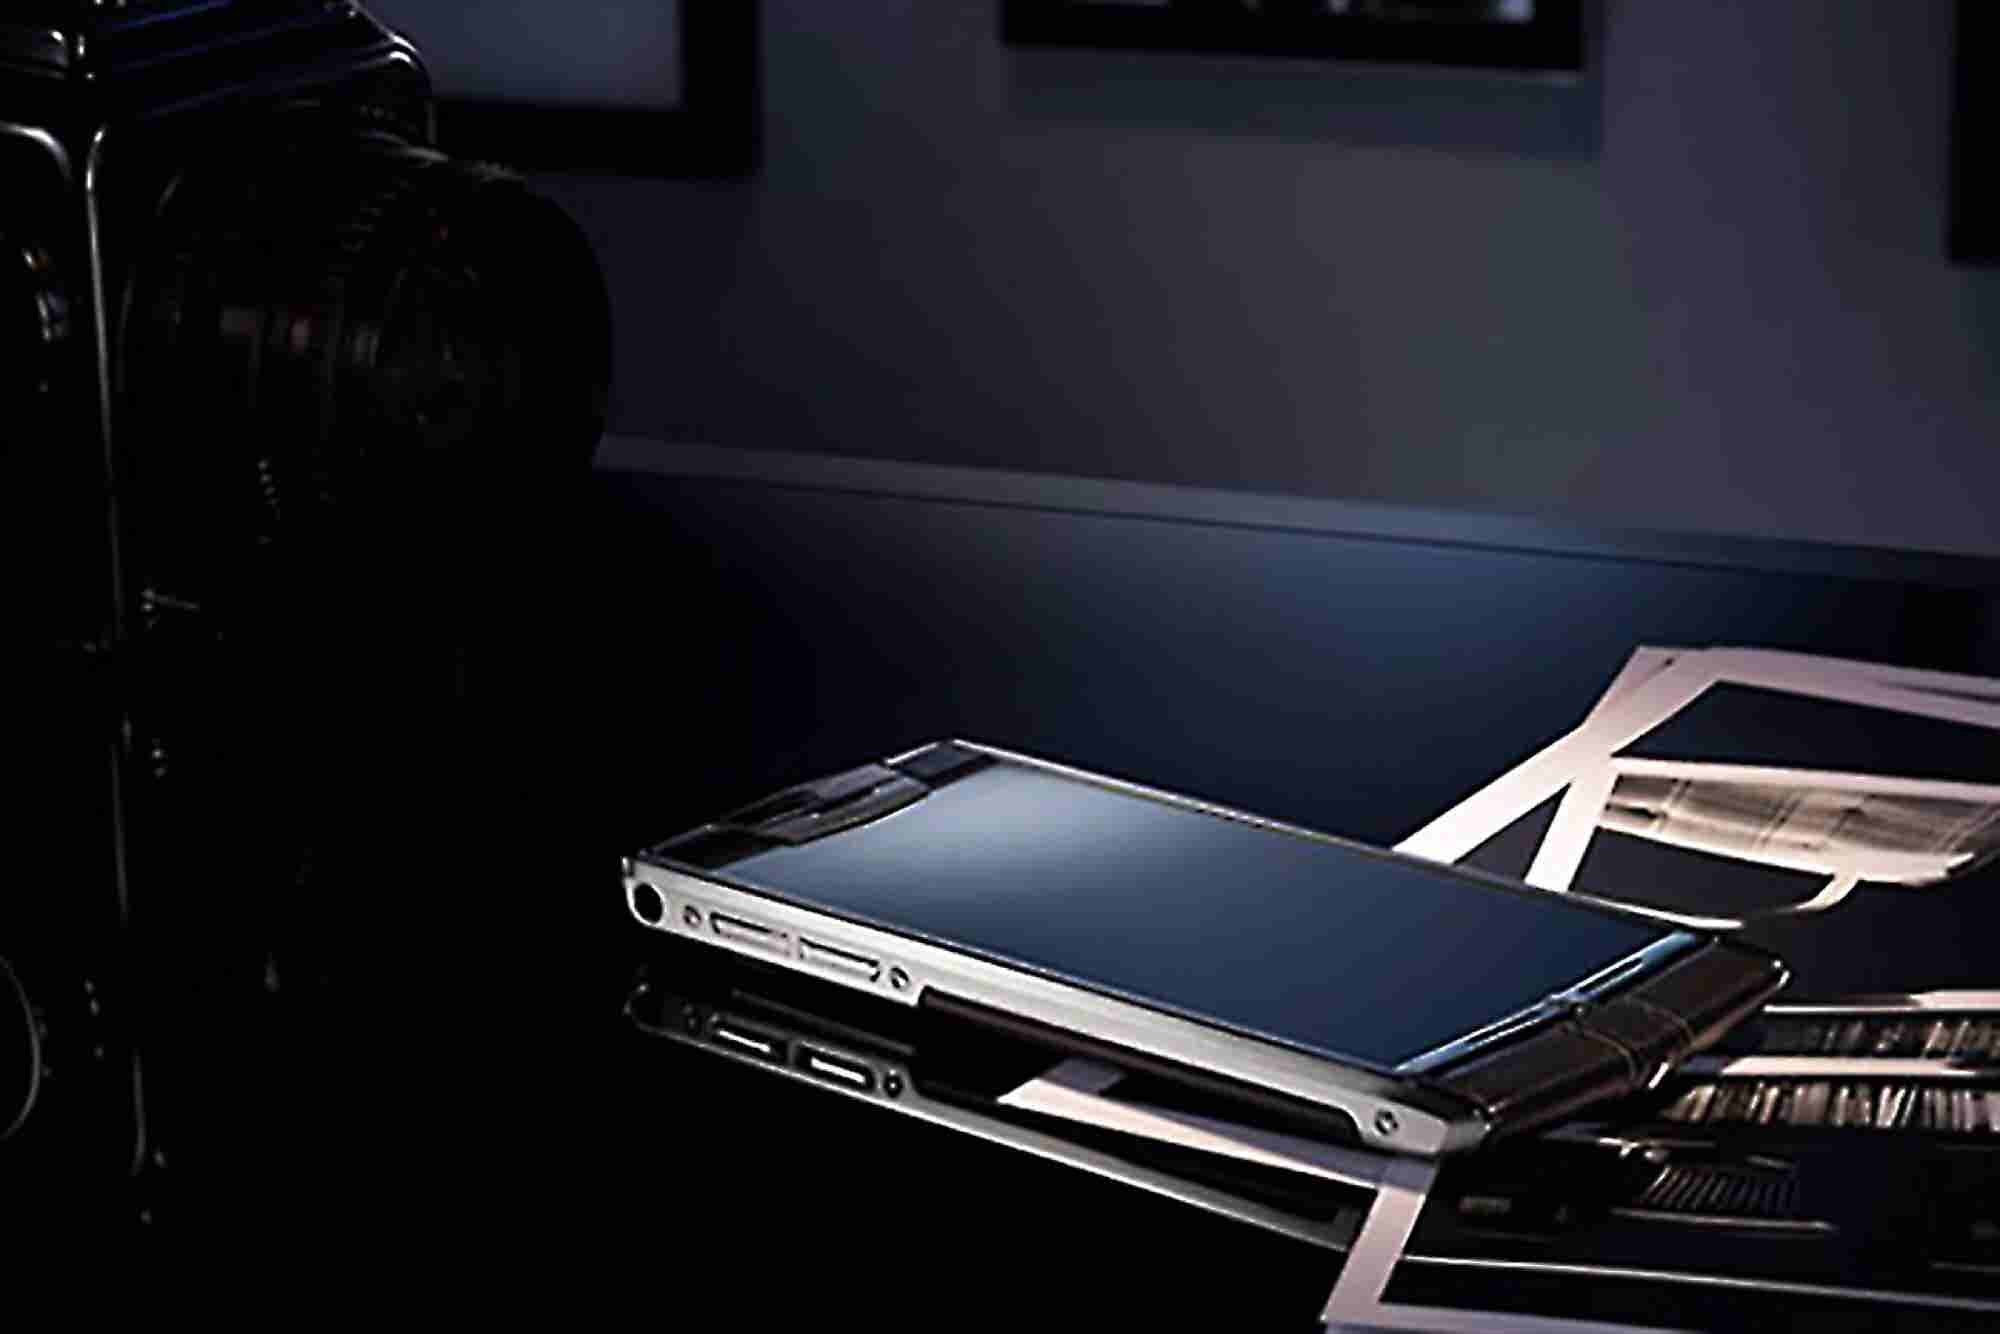 This Luxe Smartphone Could Be Yours for $10,000